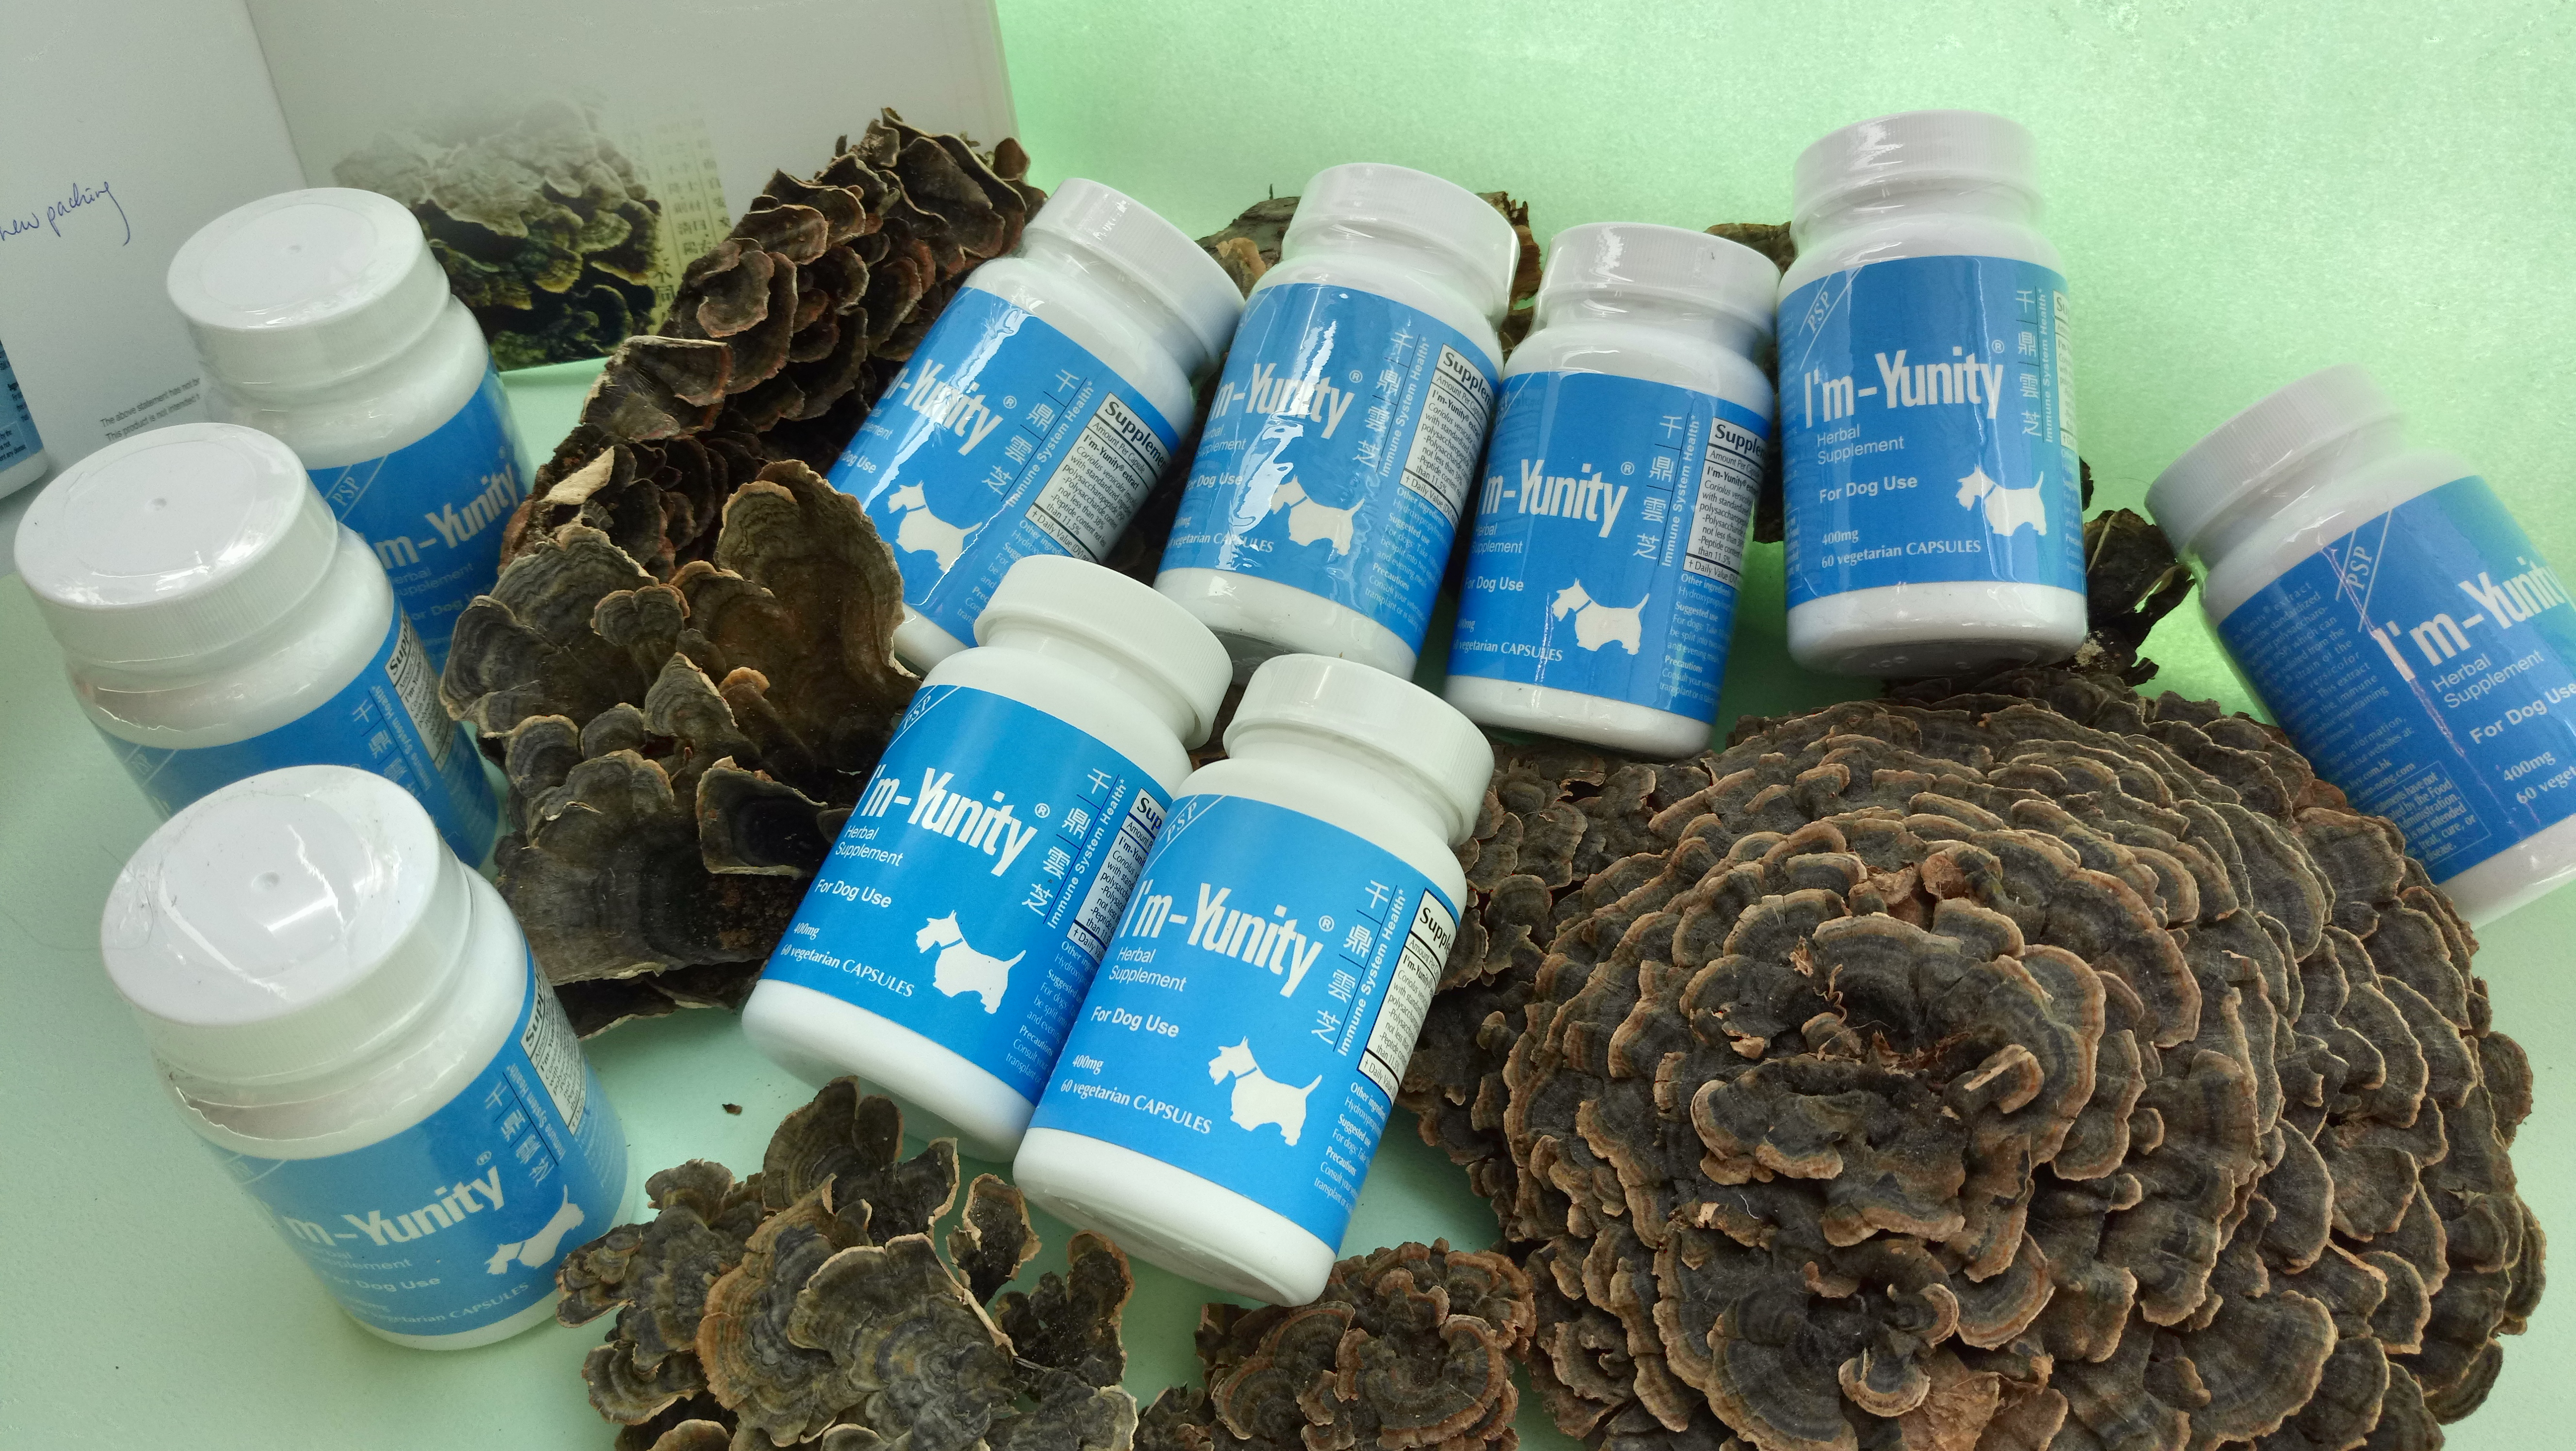 "I""m-Yunity® for Dogs is a well-researched mushroom herbal supplement for dogs' immune balance."